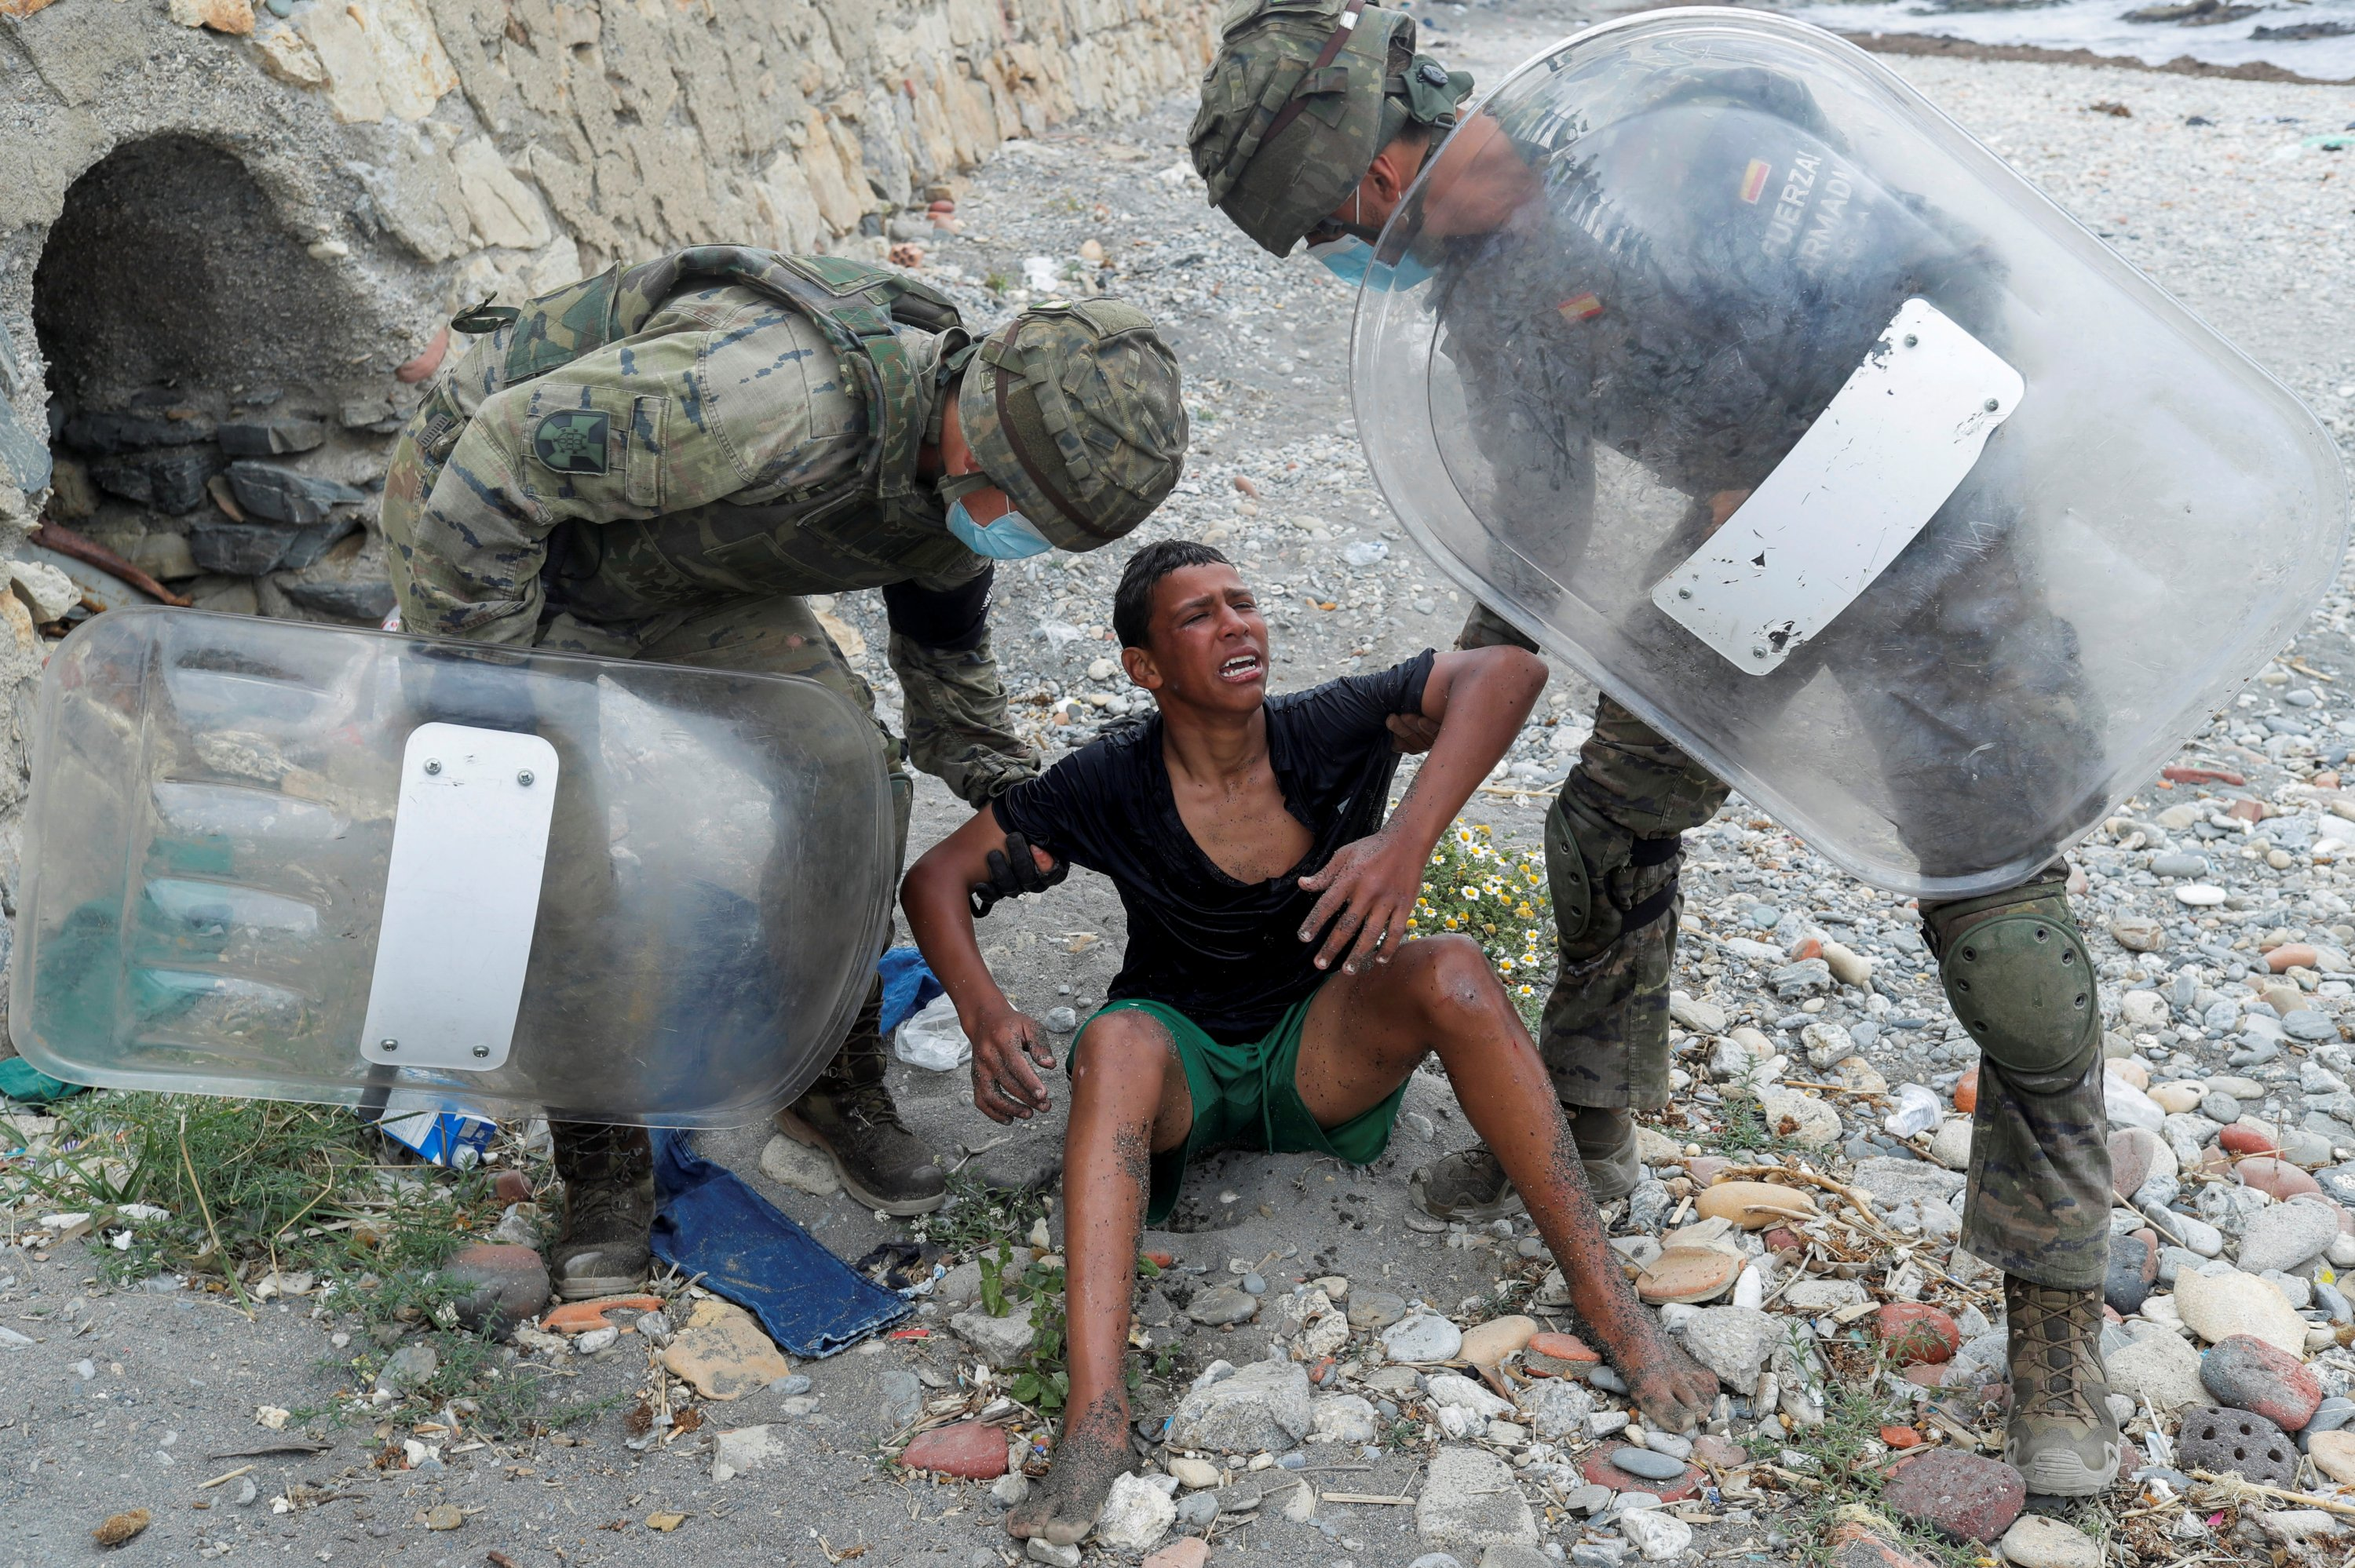 Rashid Mohamed al-Messaoui, 25, a soldier deployed at Spain's North African enclave of Ceuta, assists a Moroccan boy who used empty plastic bottles as a float to swim to Ceuta, on El Tarajal beach, near the fence between the Spanish-Moroccan border, after thousands of migrants swam across the border, in Ceuta, Spain, May 19, 2021. (Reuters Photo)